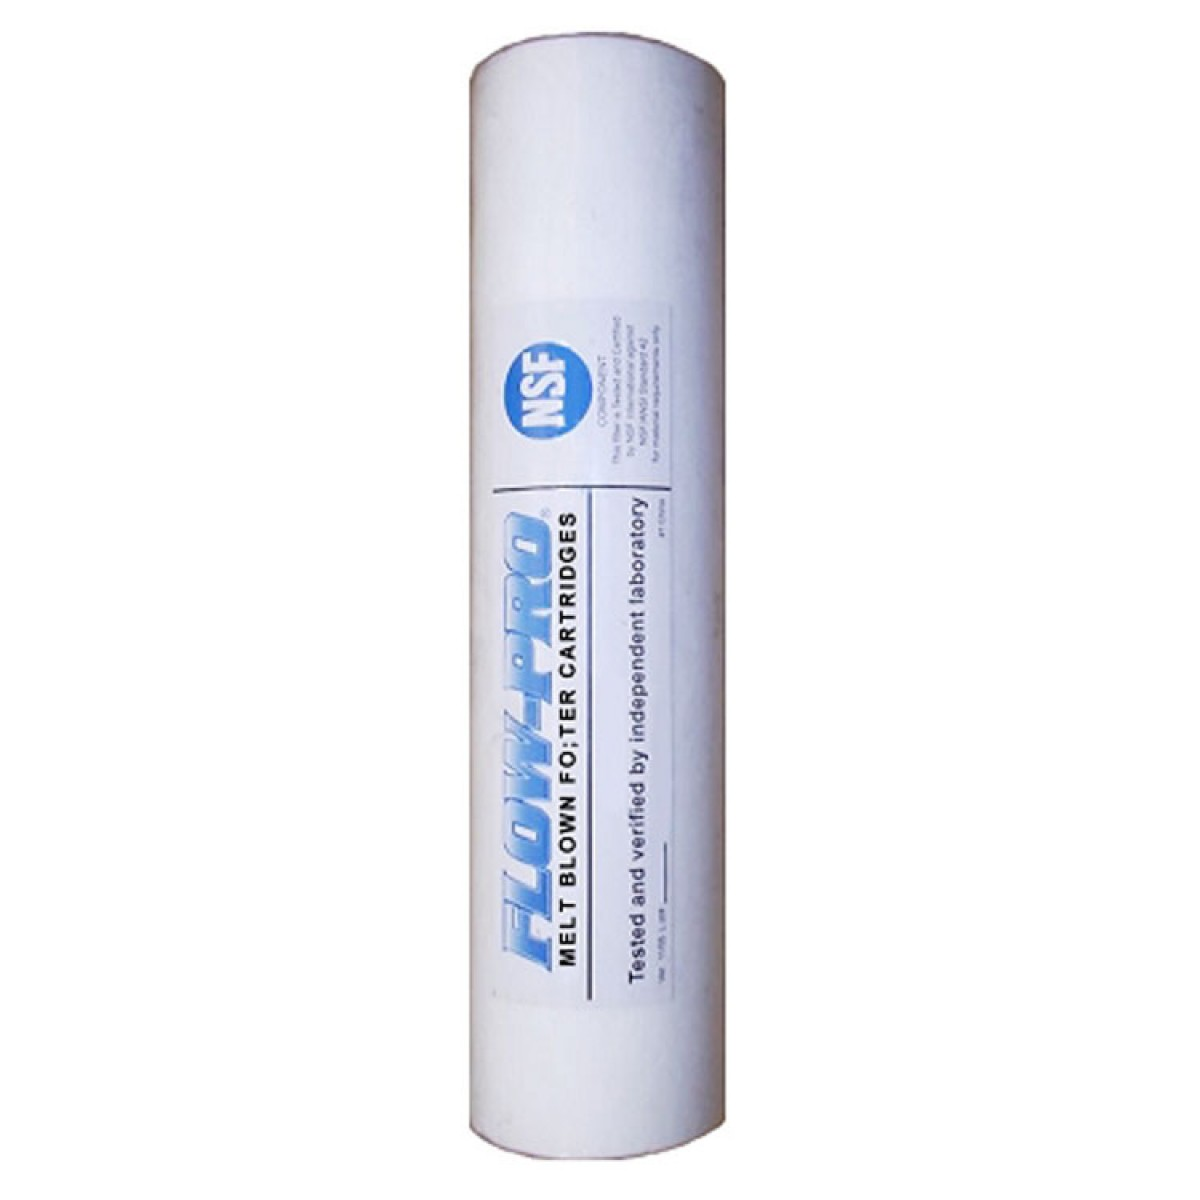 Watts Water Filter Replacement Fpmb5 978 Watts Water Filter Cartridge